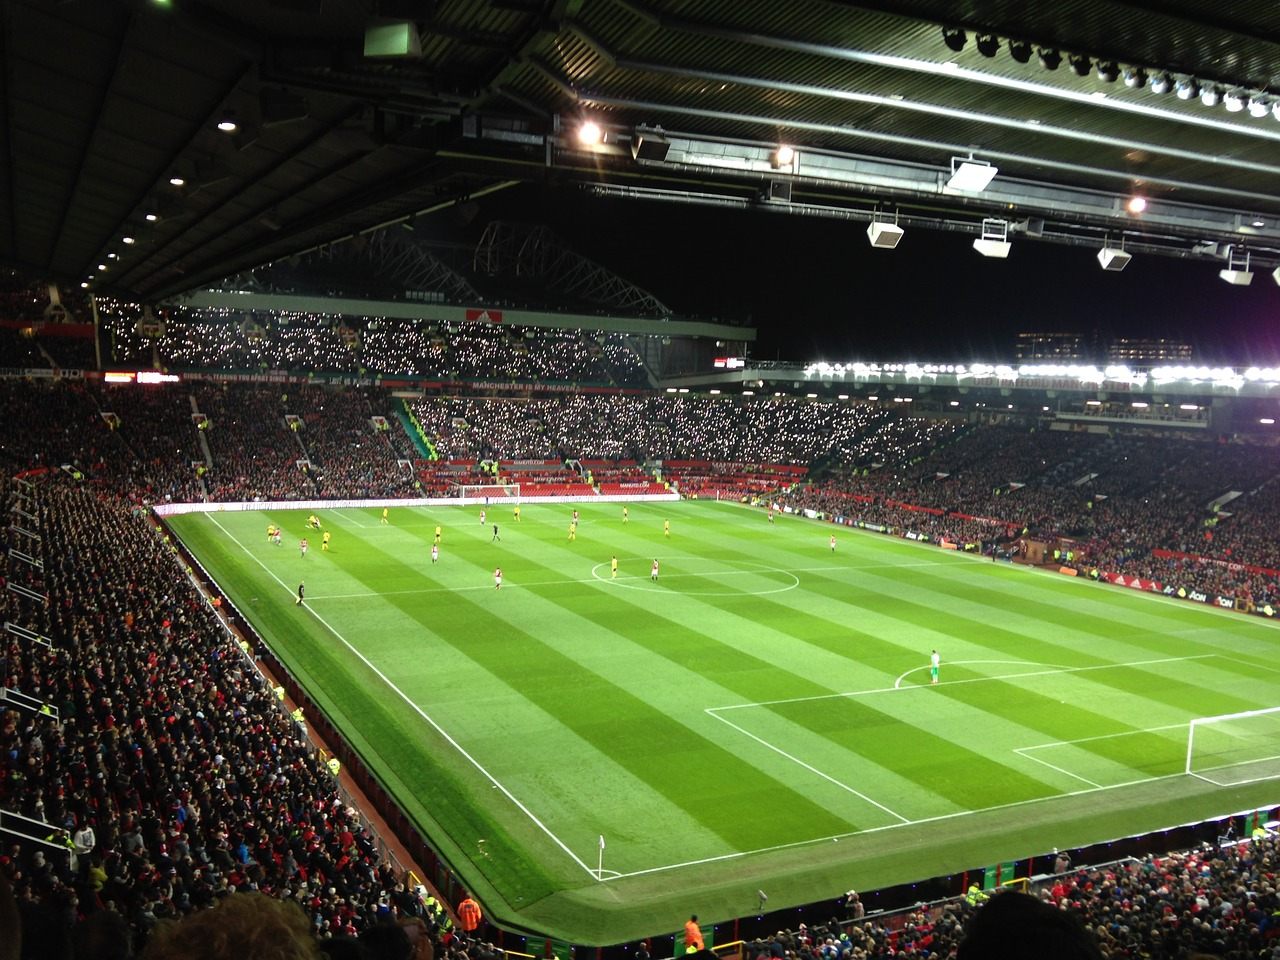 Old Trafford stadion in Manchester